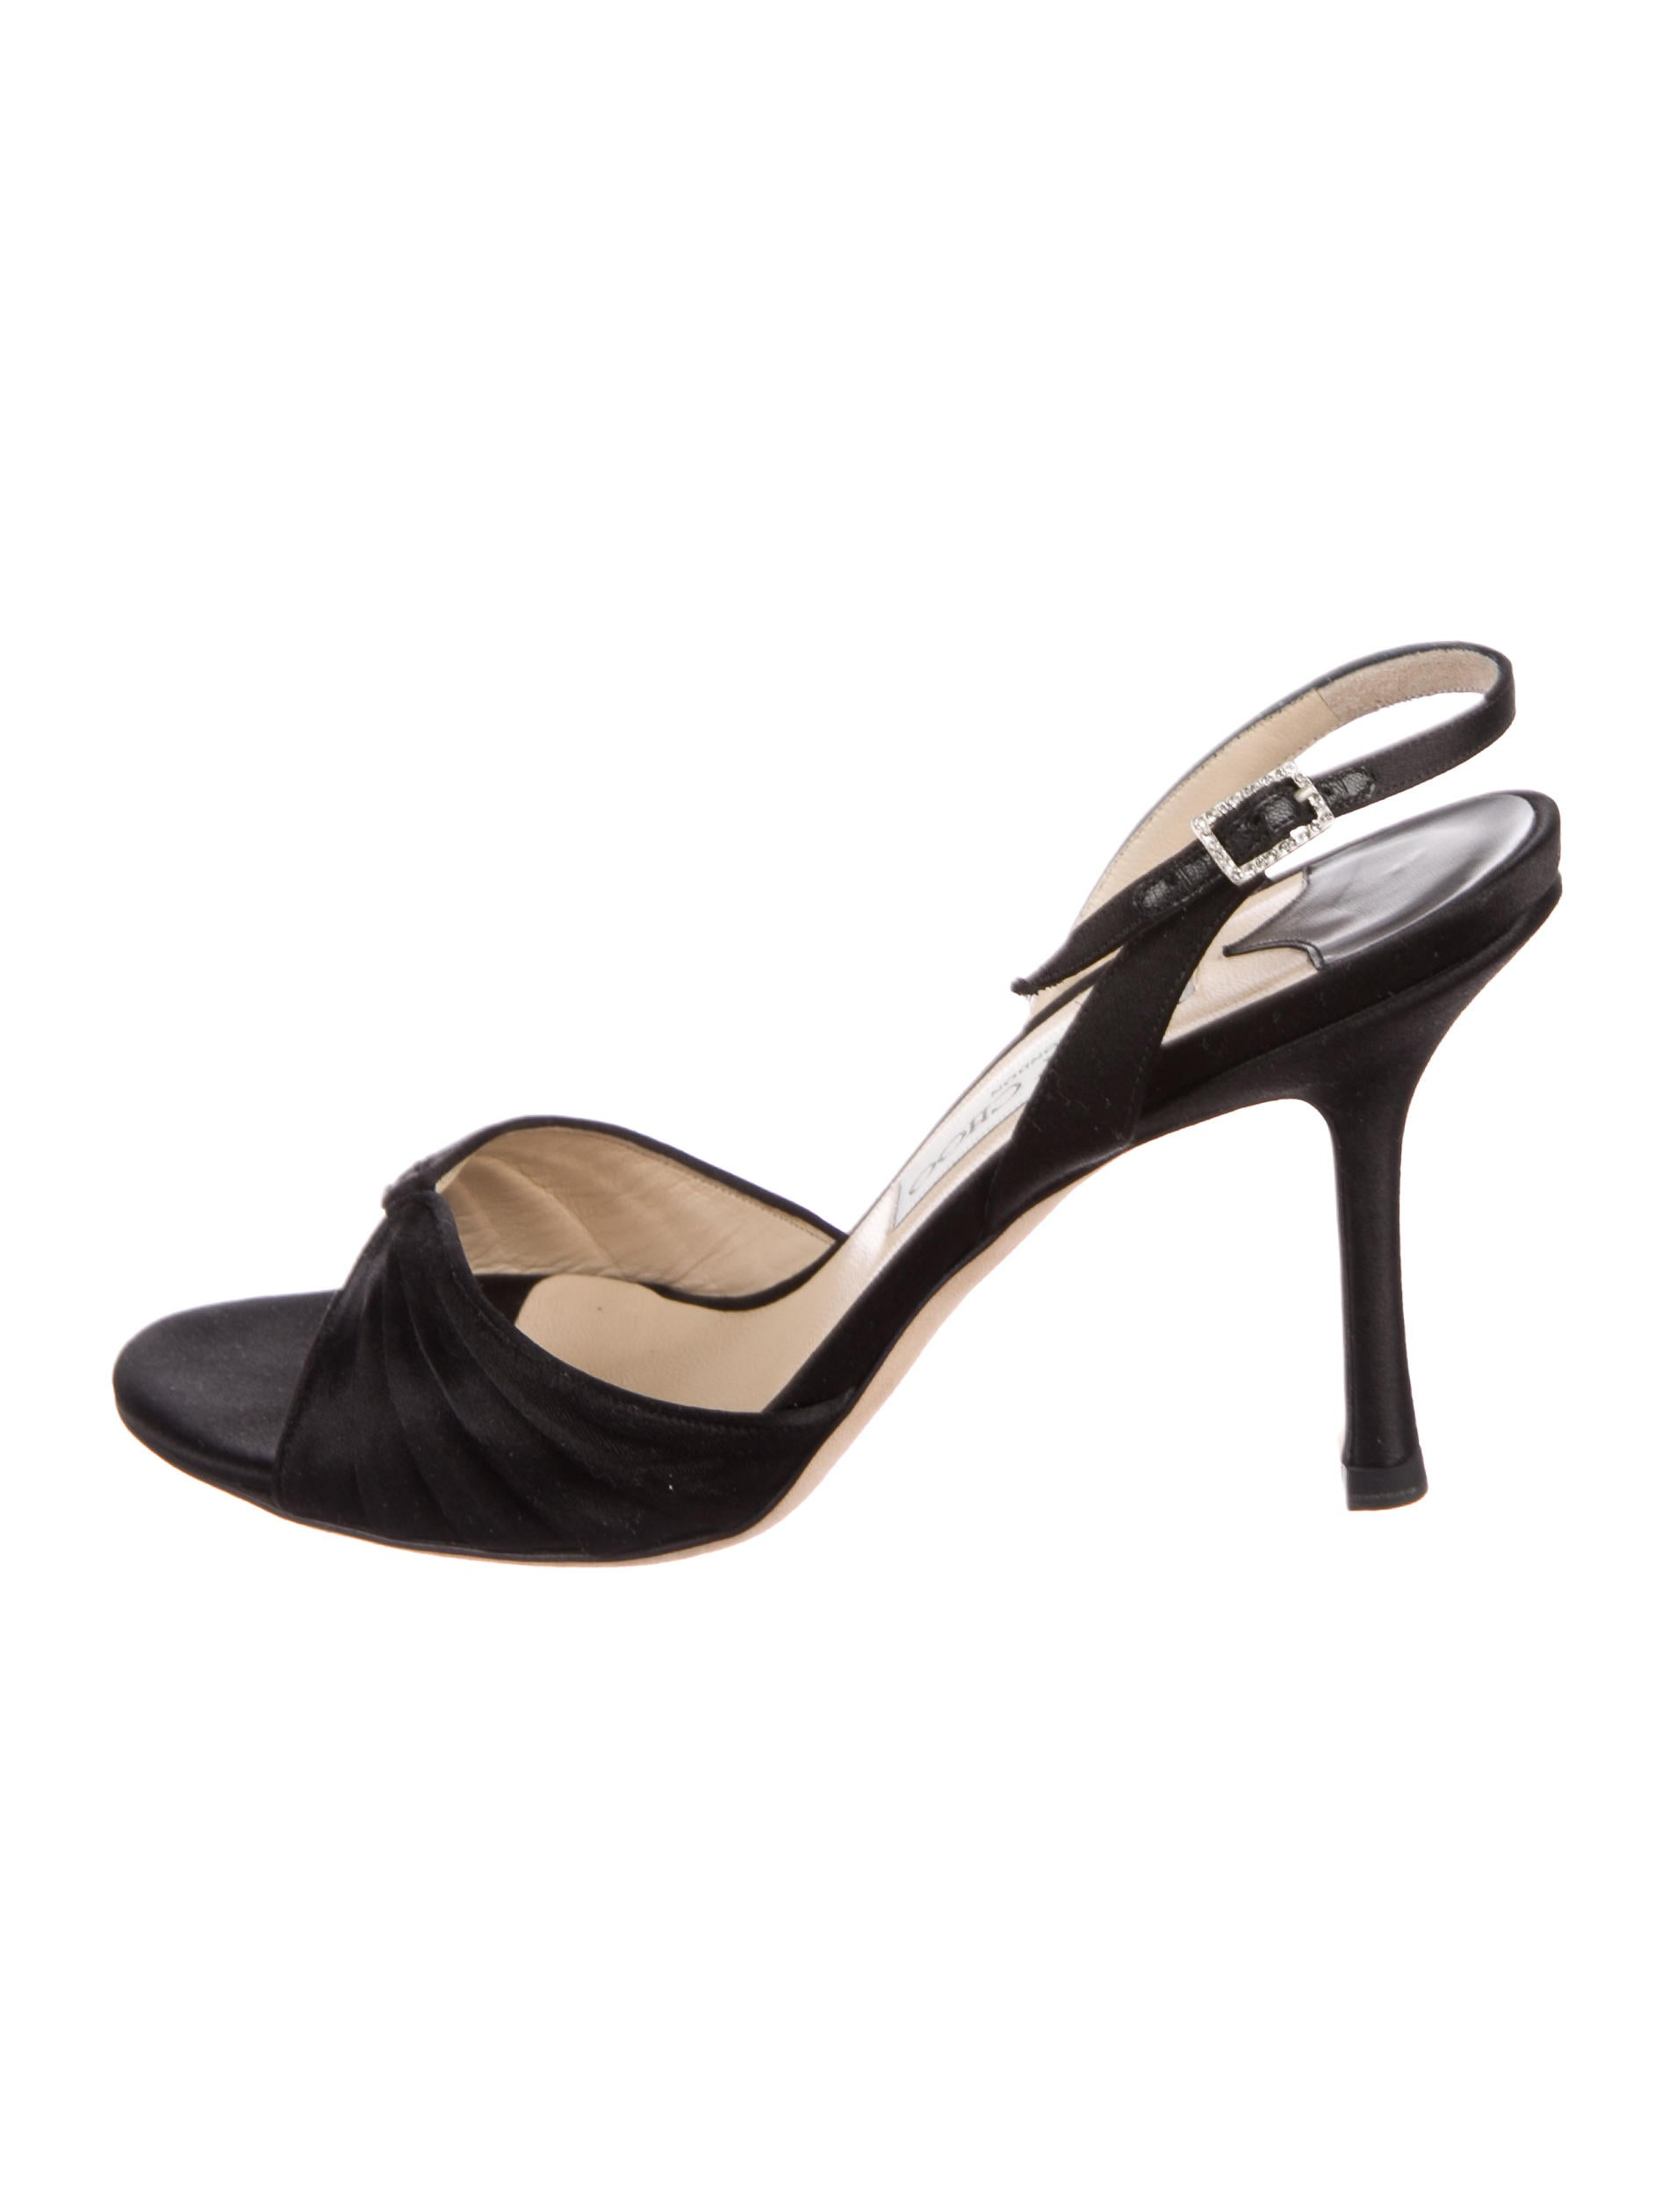 outlet get to buy footlocker for sale Jimmy Choo King Ruched Sandals excellent cheap price F6I093